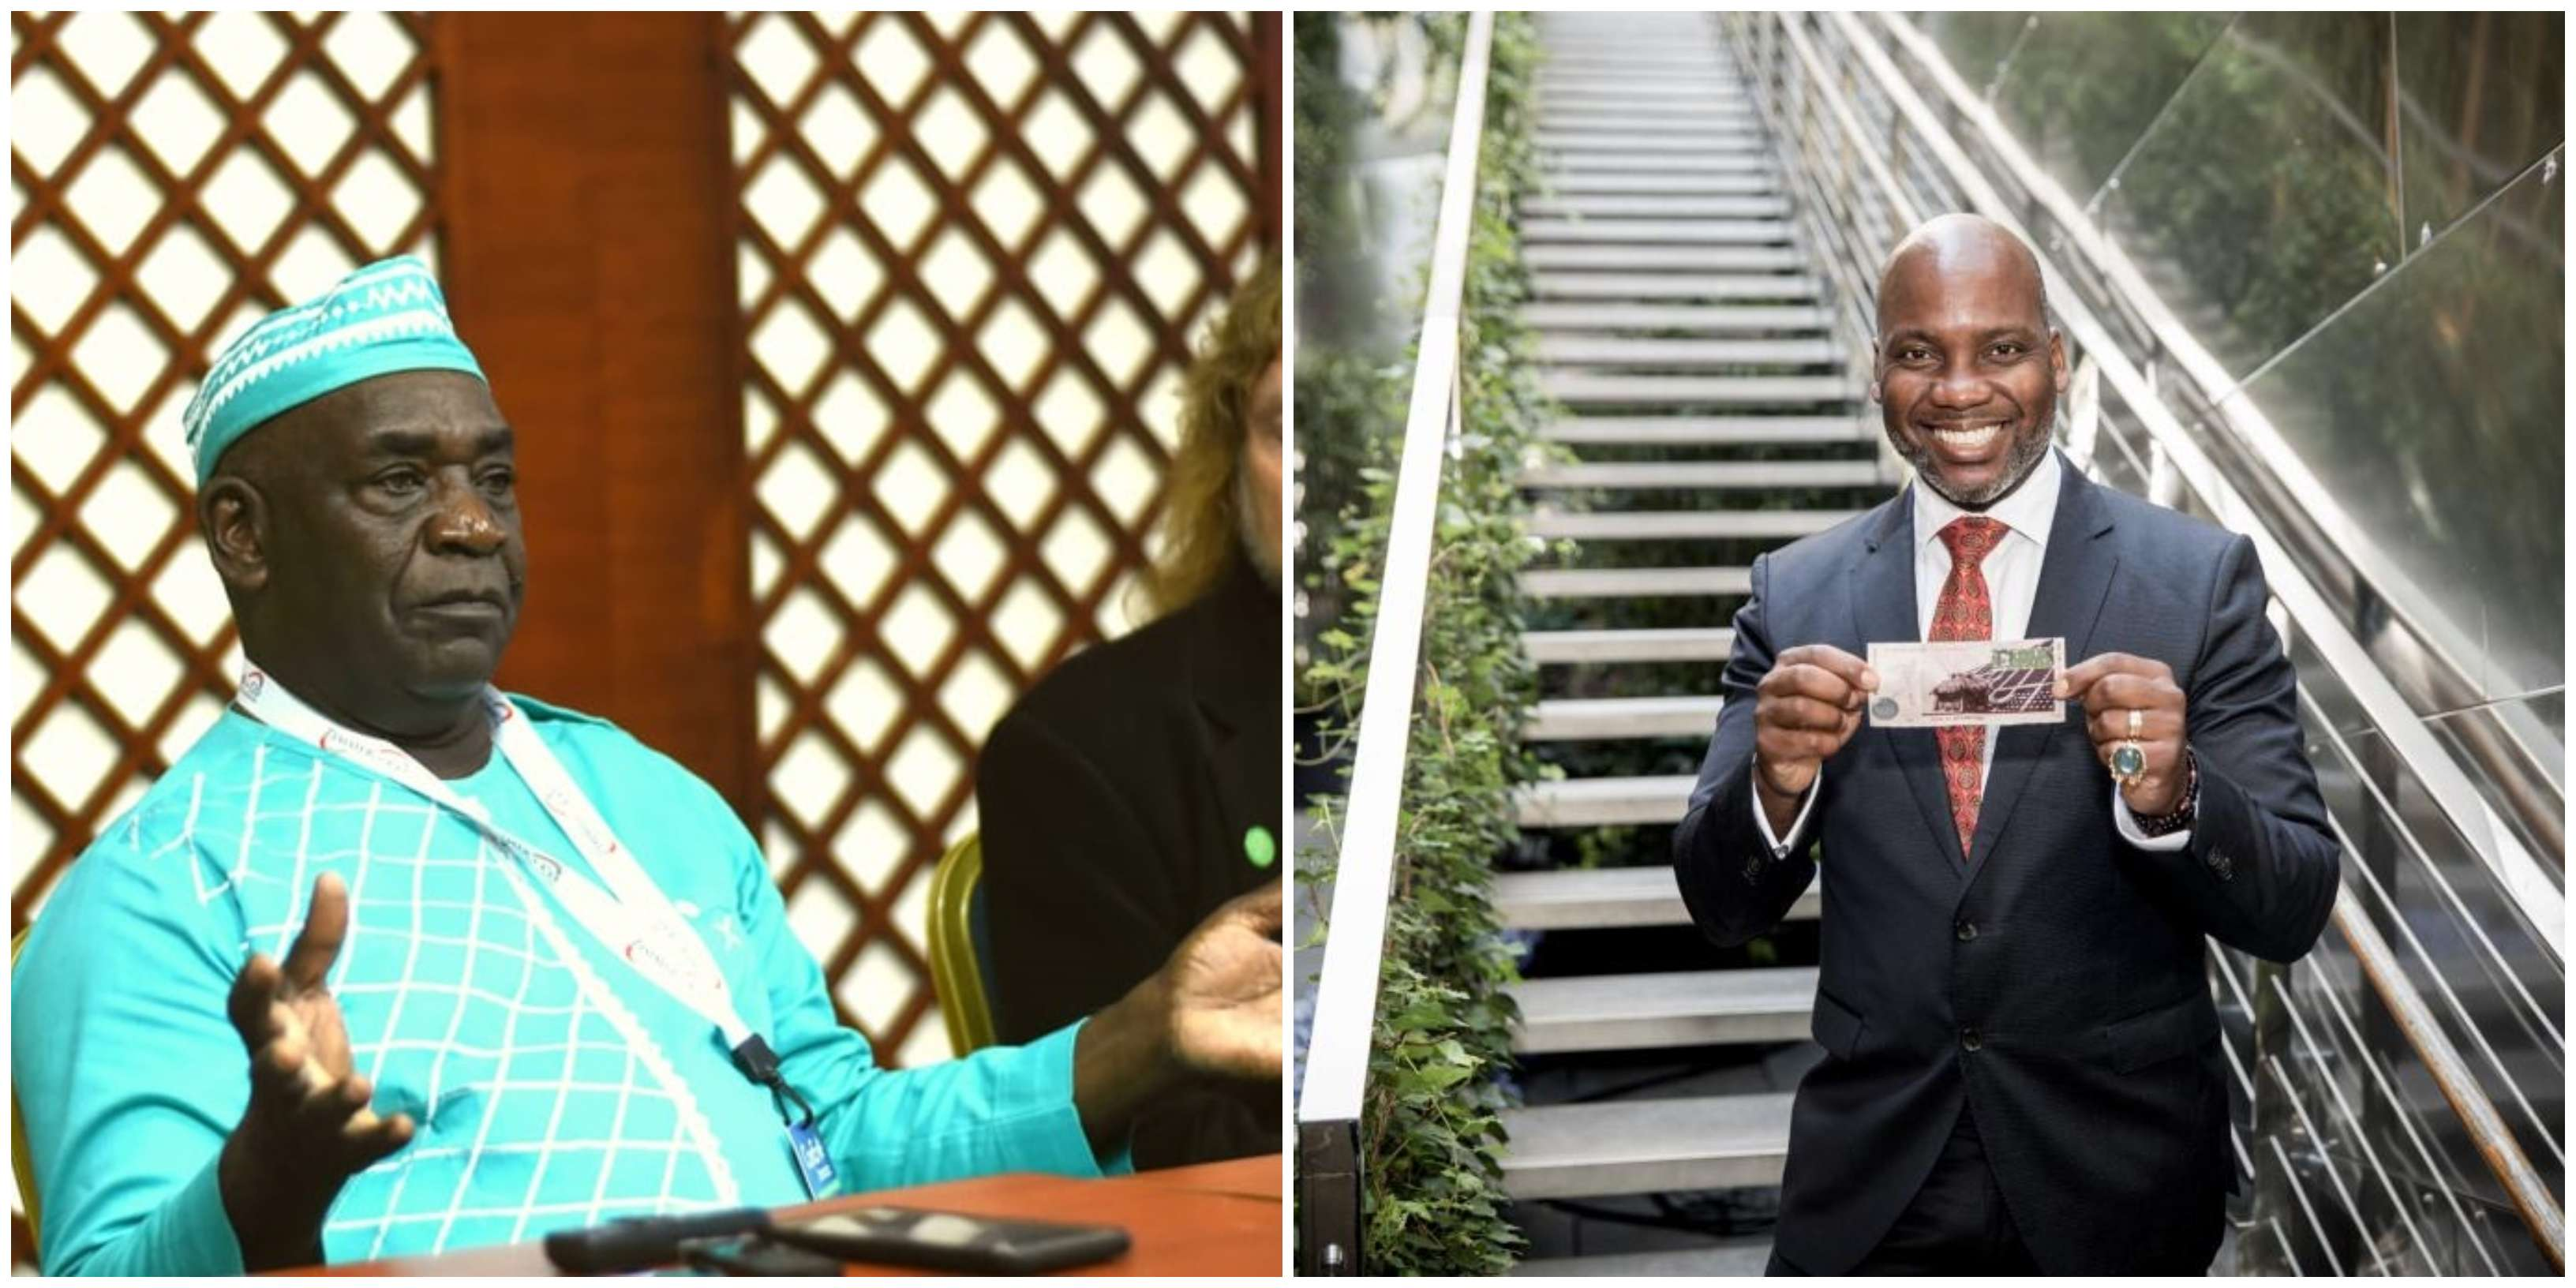 Maroon Leaders At Odds Over Accompong's Central Solar Reserve Bank